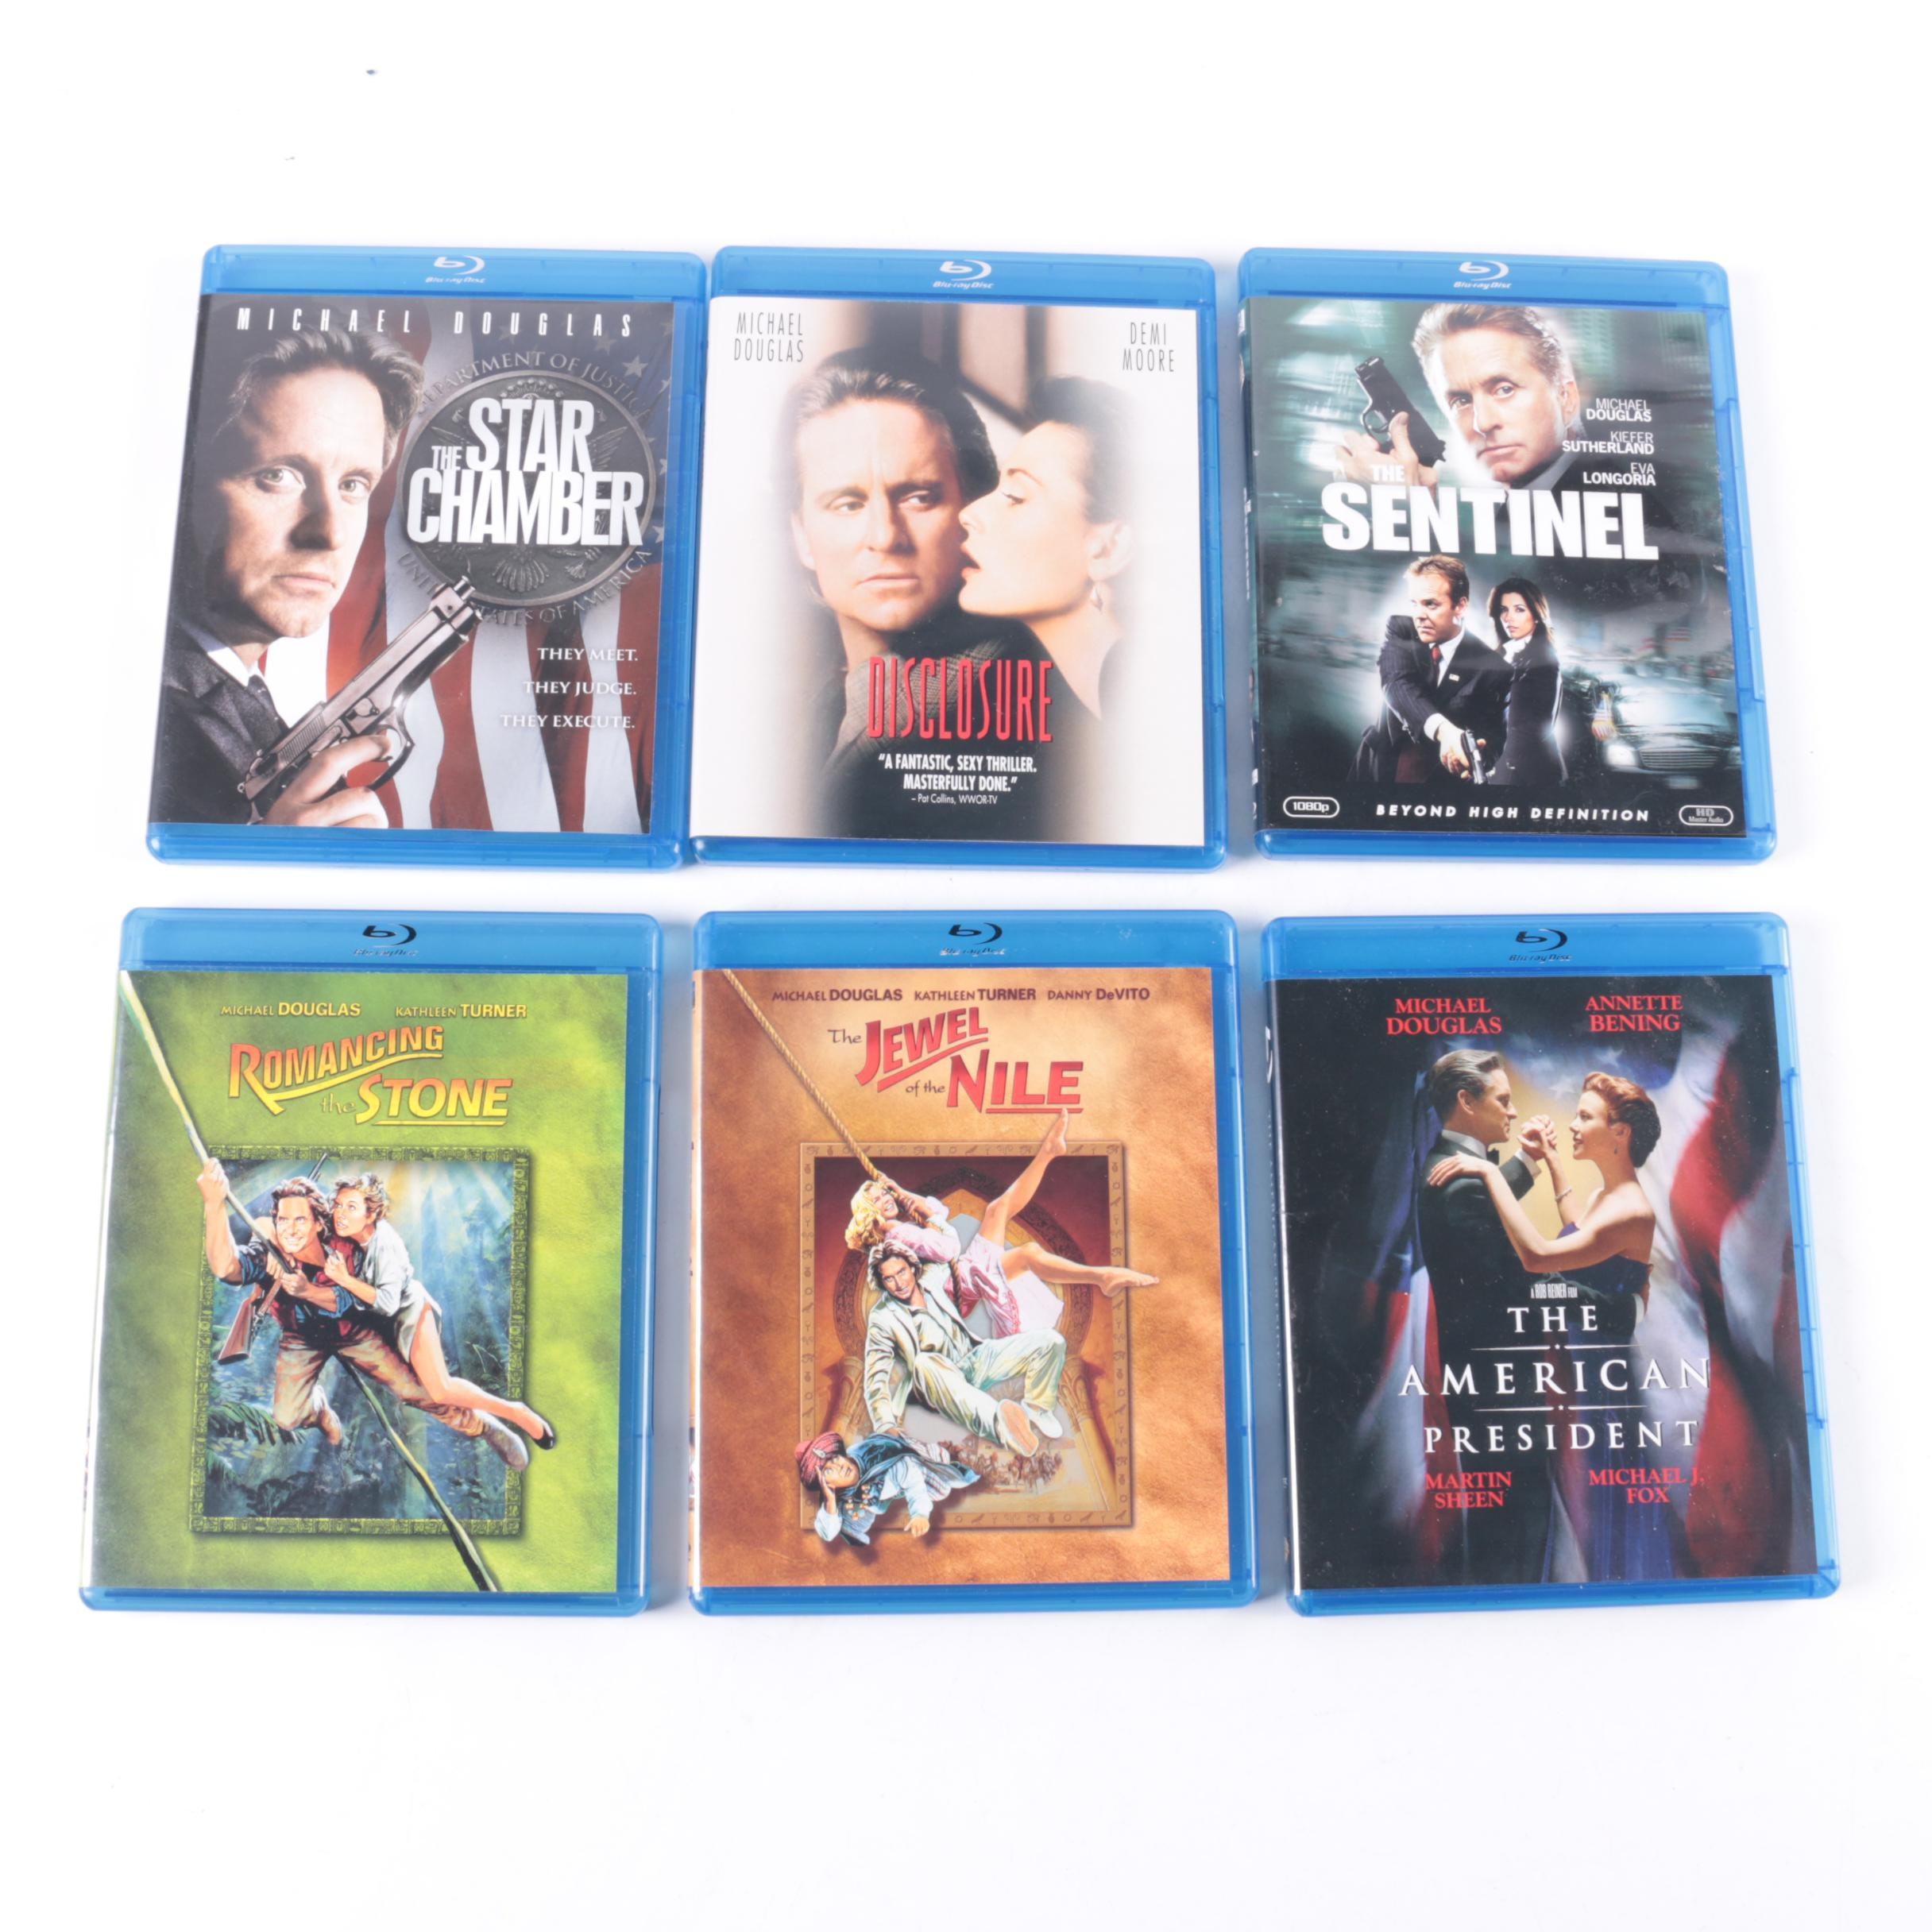 Michael Douglas Feature Films Blu-ray Collection